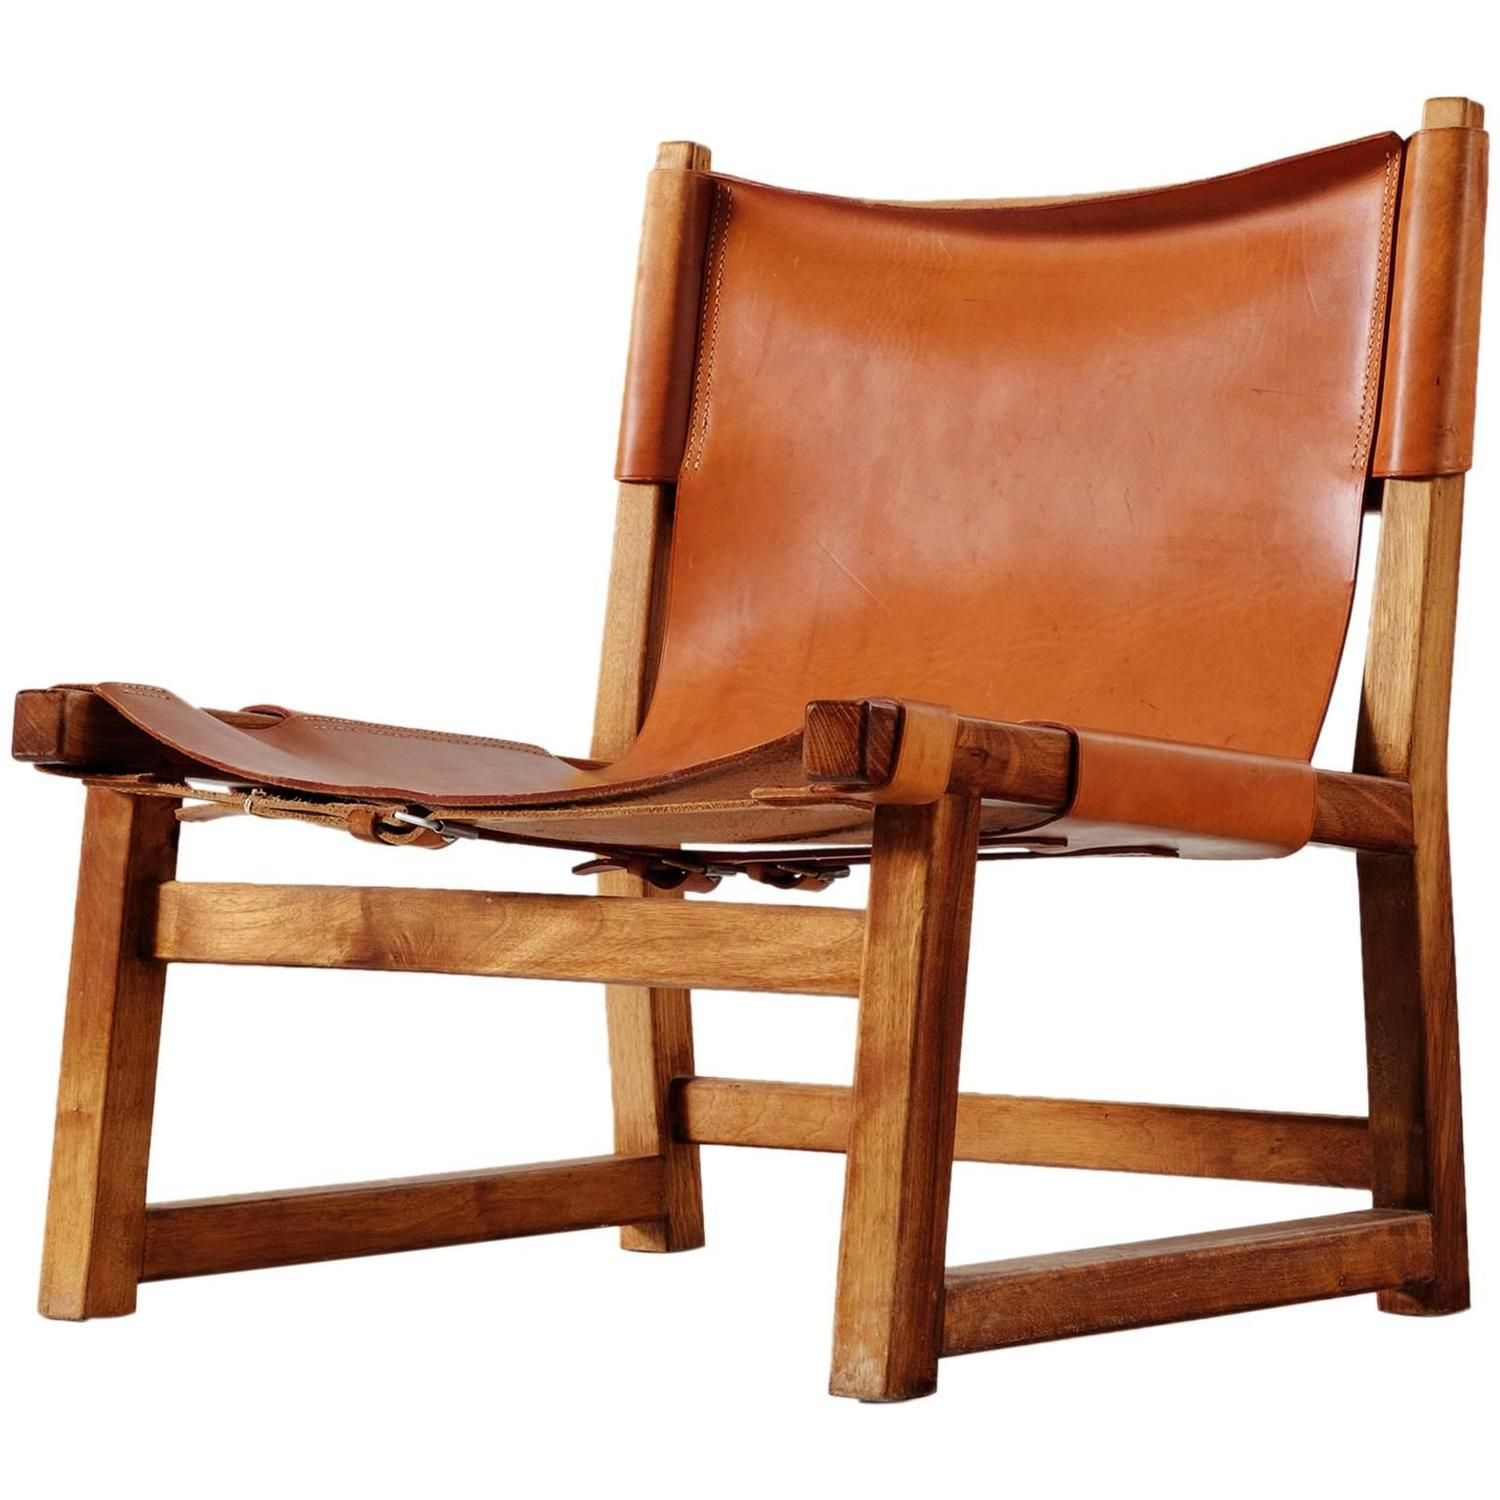 Scandinavian Hunting Chair In Cognac Leather Hunting Chair Chair Mid Century Leather Chair